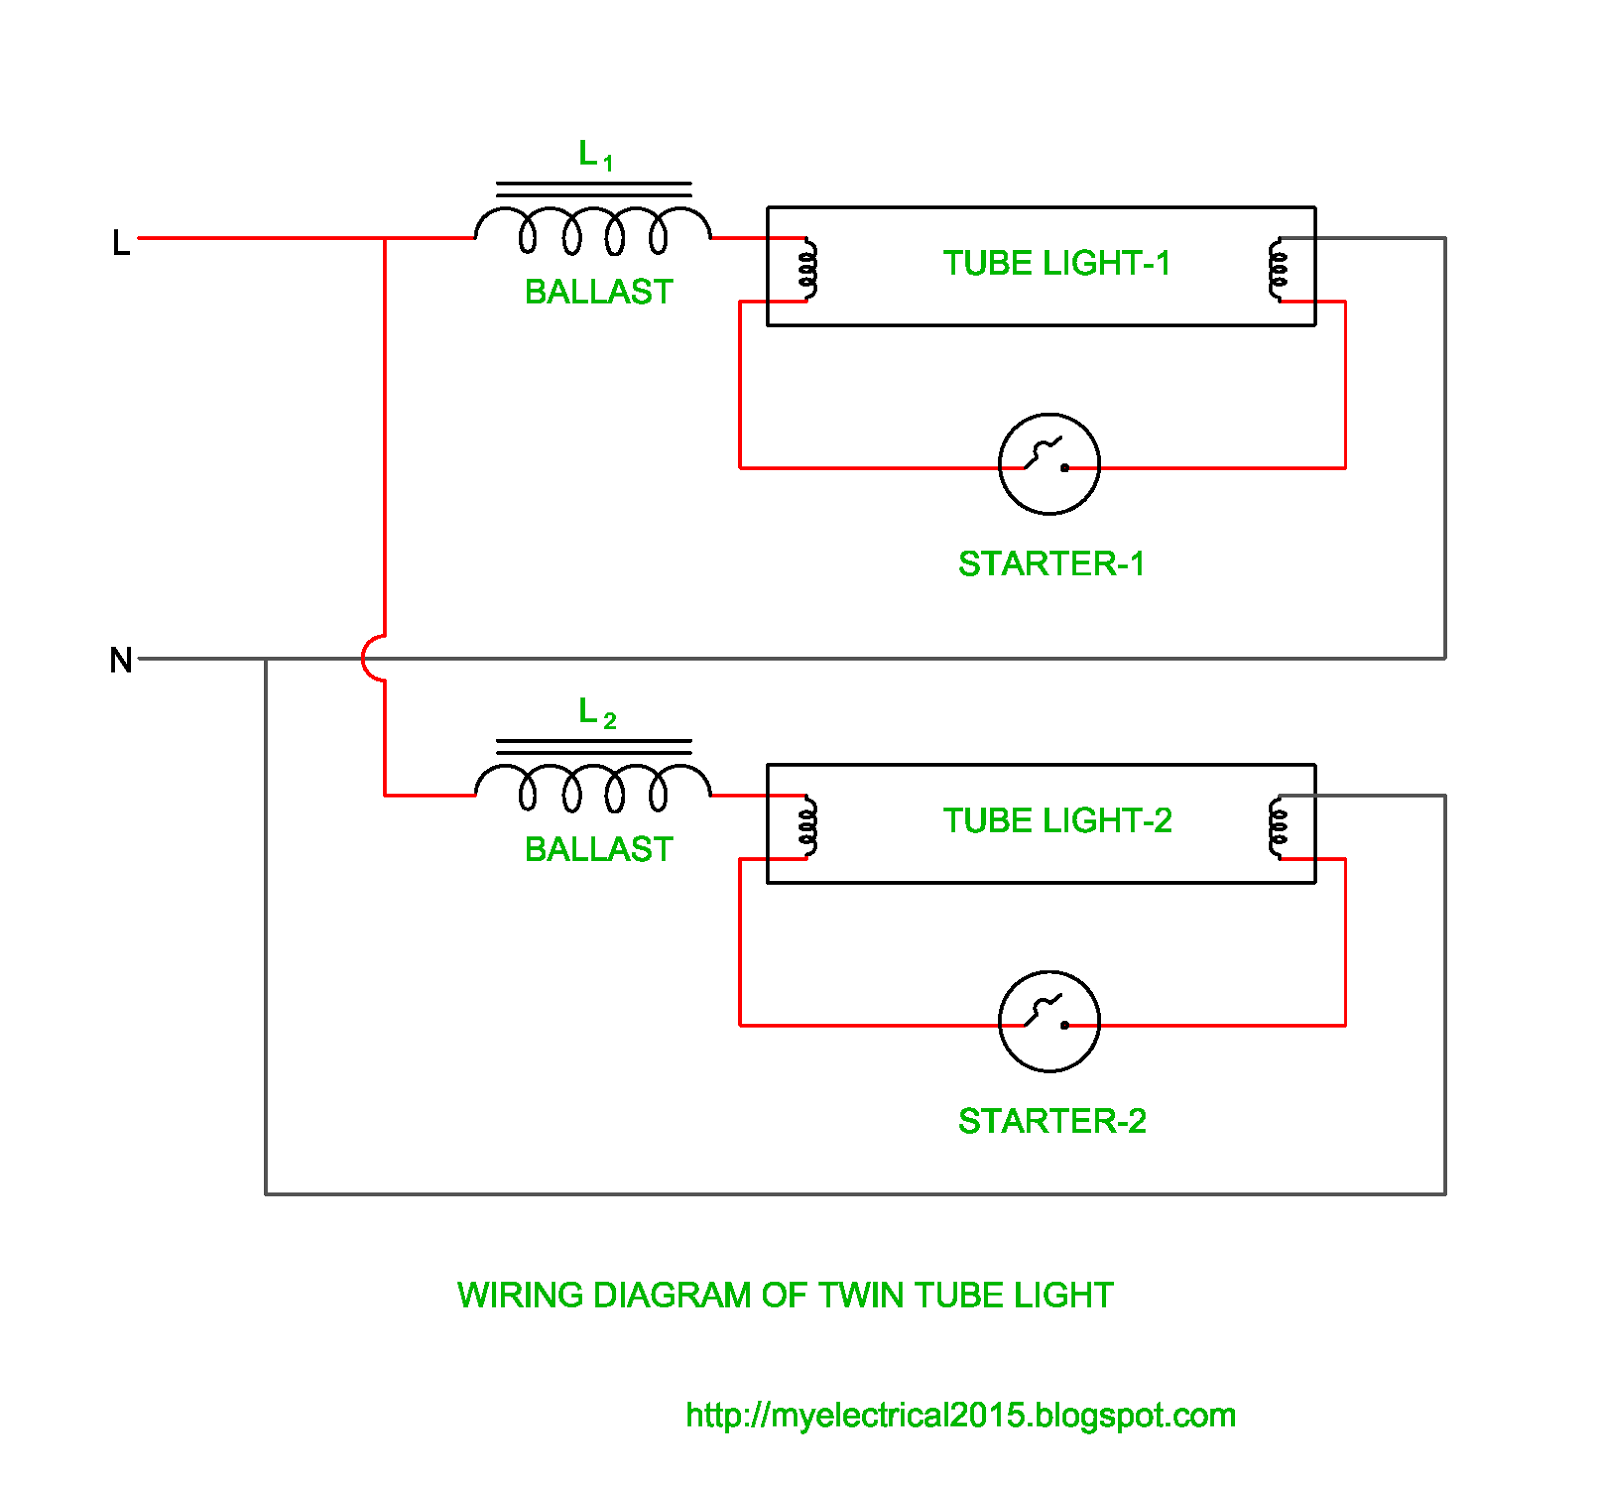 DIAGRAM] Bazooka Tube Wiring Diagram FULL Version HD Quality Wiring Diagram  - DIAGRAMRT.LIBERTACIVILI.IT | Tube Light Wiring Diagram |  | Diagram Database - libertacivili.it